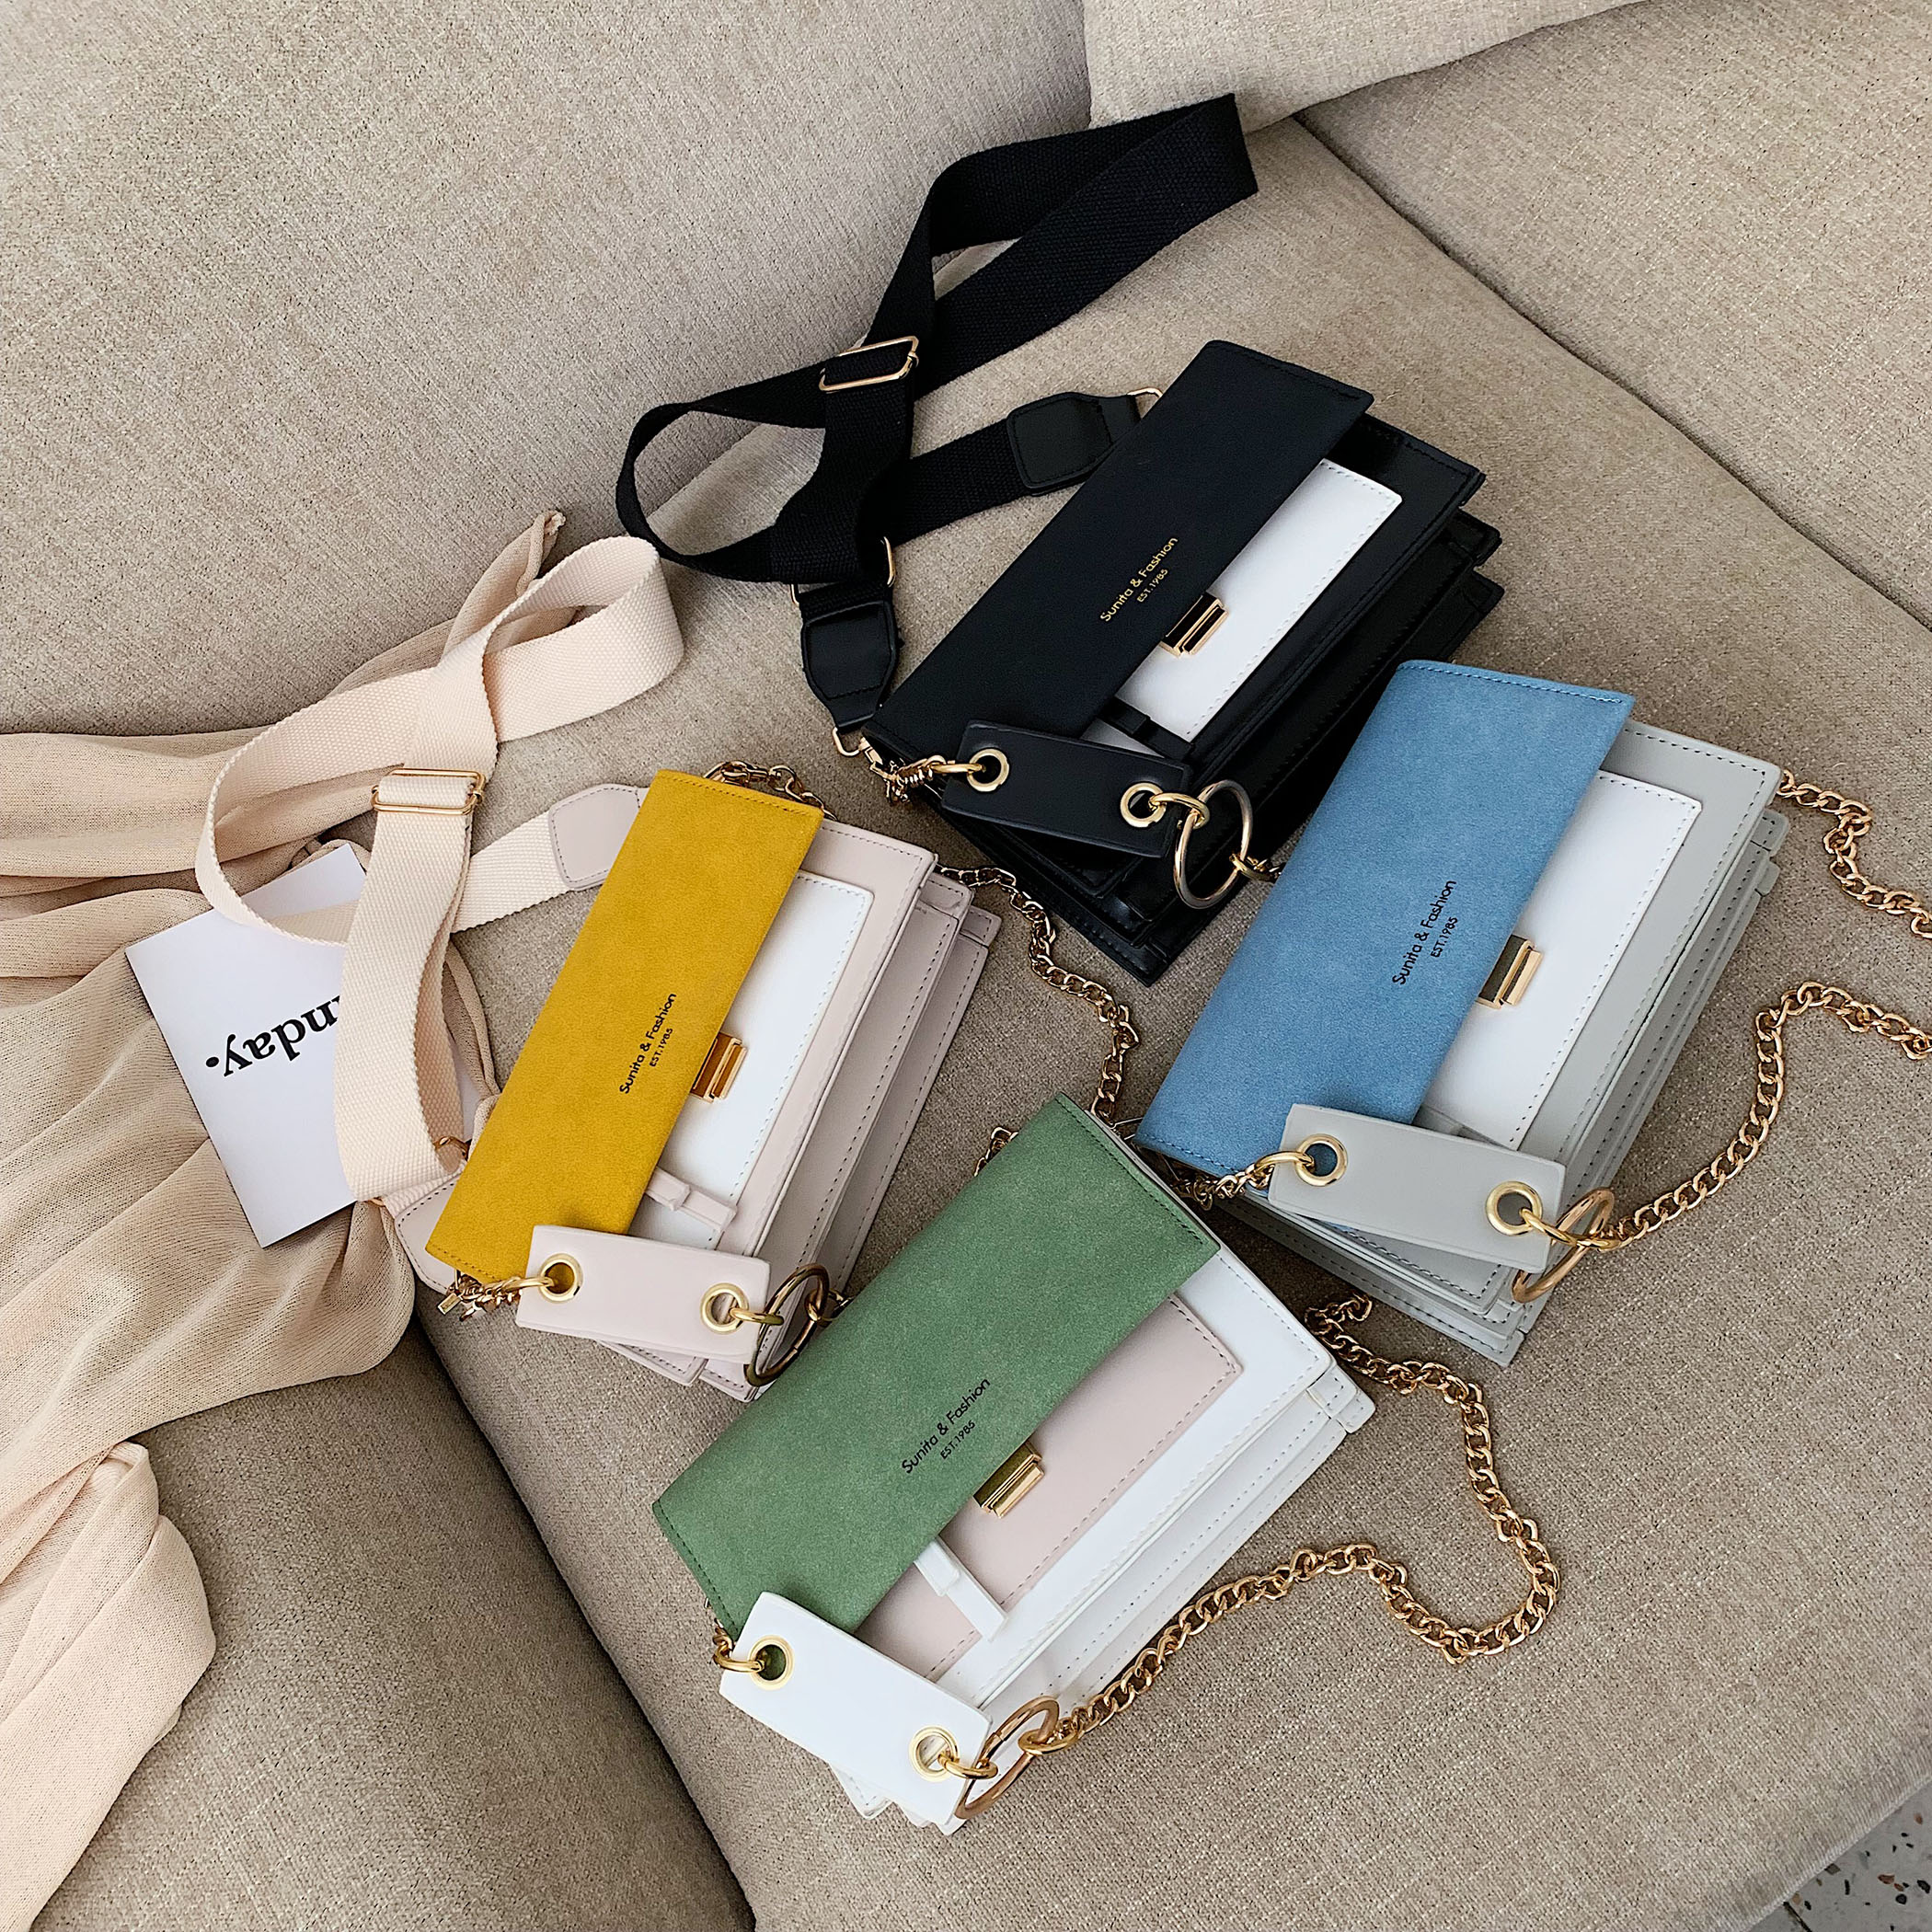 Scrub Leather Contrast Color Crossbody Bags For Women 2020 Chain Messenger Shoulder Bag Ladies Purses and Handbags Cross Body